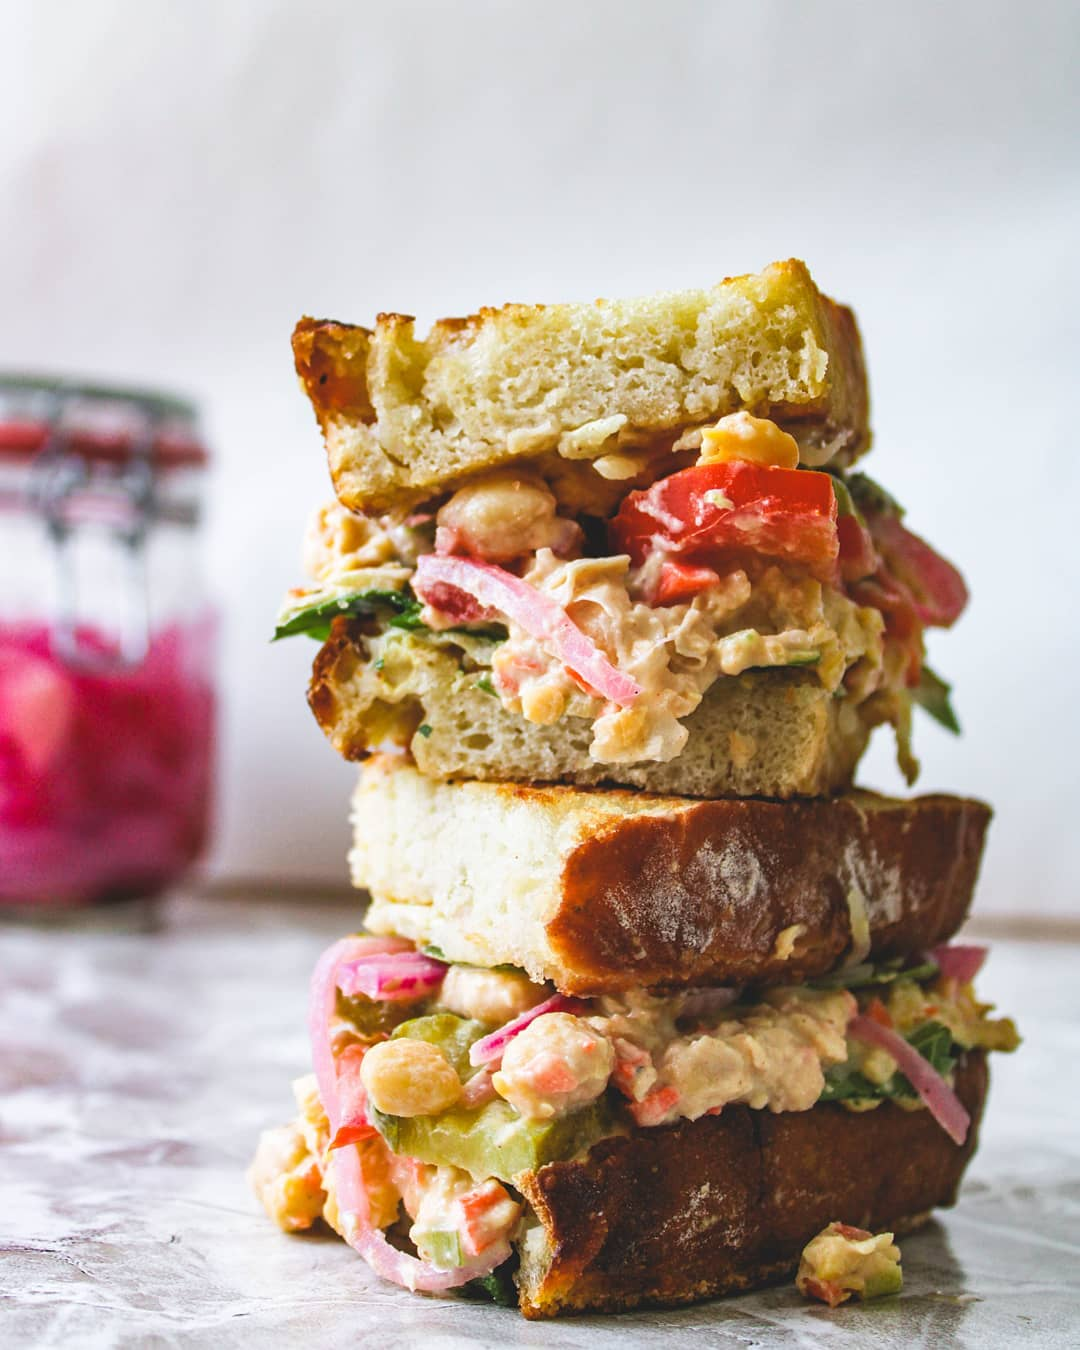 looking for new sandwich inspo try this chickpea salad sammi display image  bfa4df25